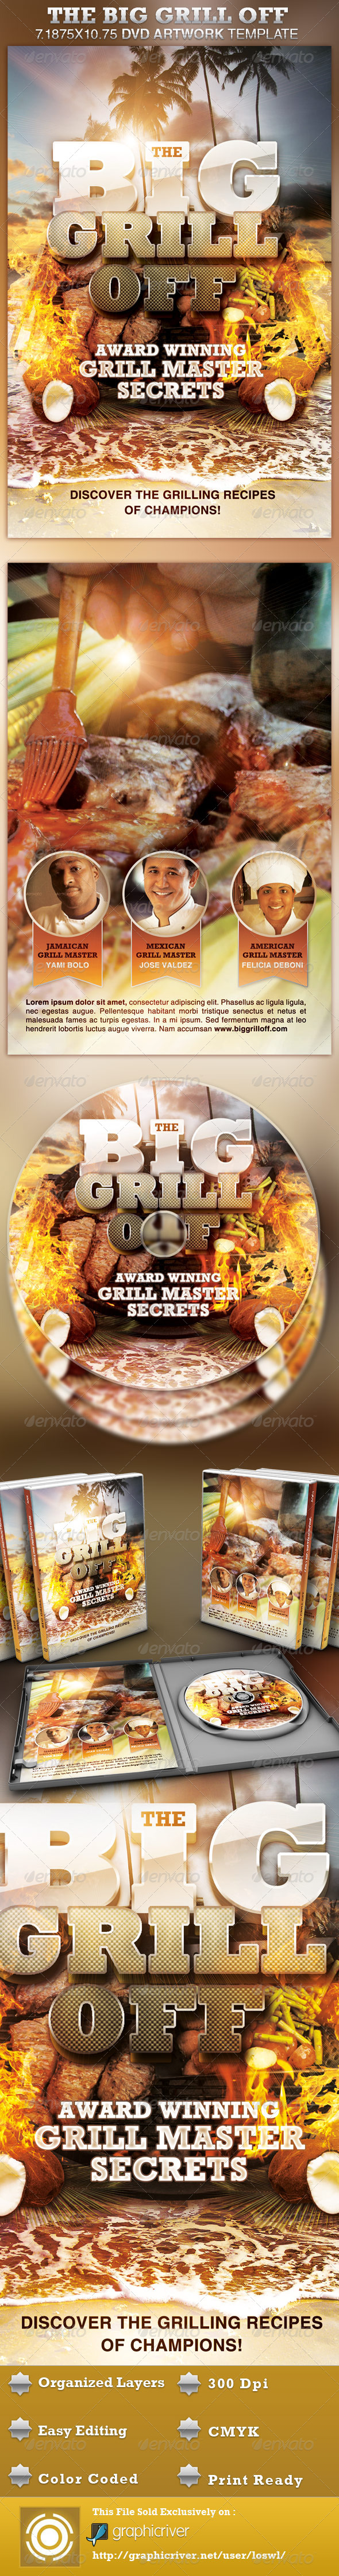 The Big Grill Off DVD Artwork Template - CD & DVD Artwork Print Templates